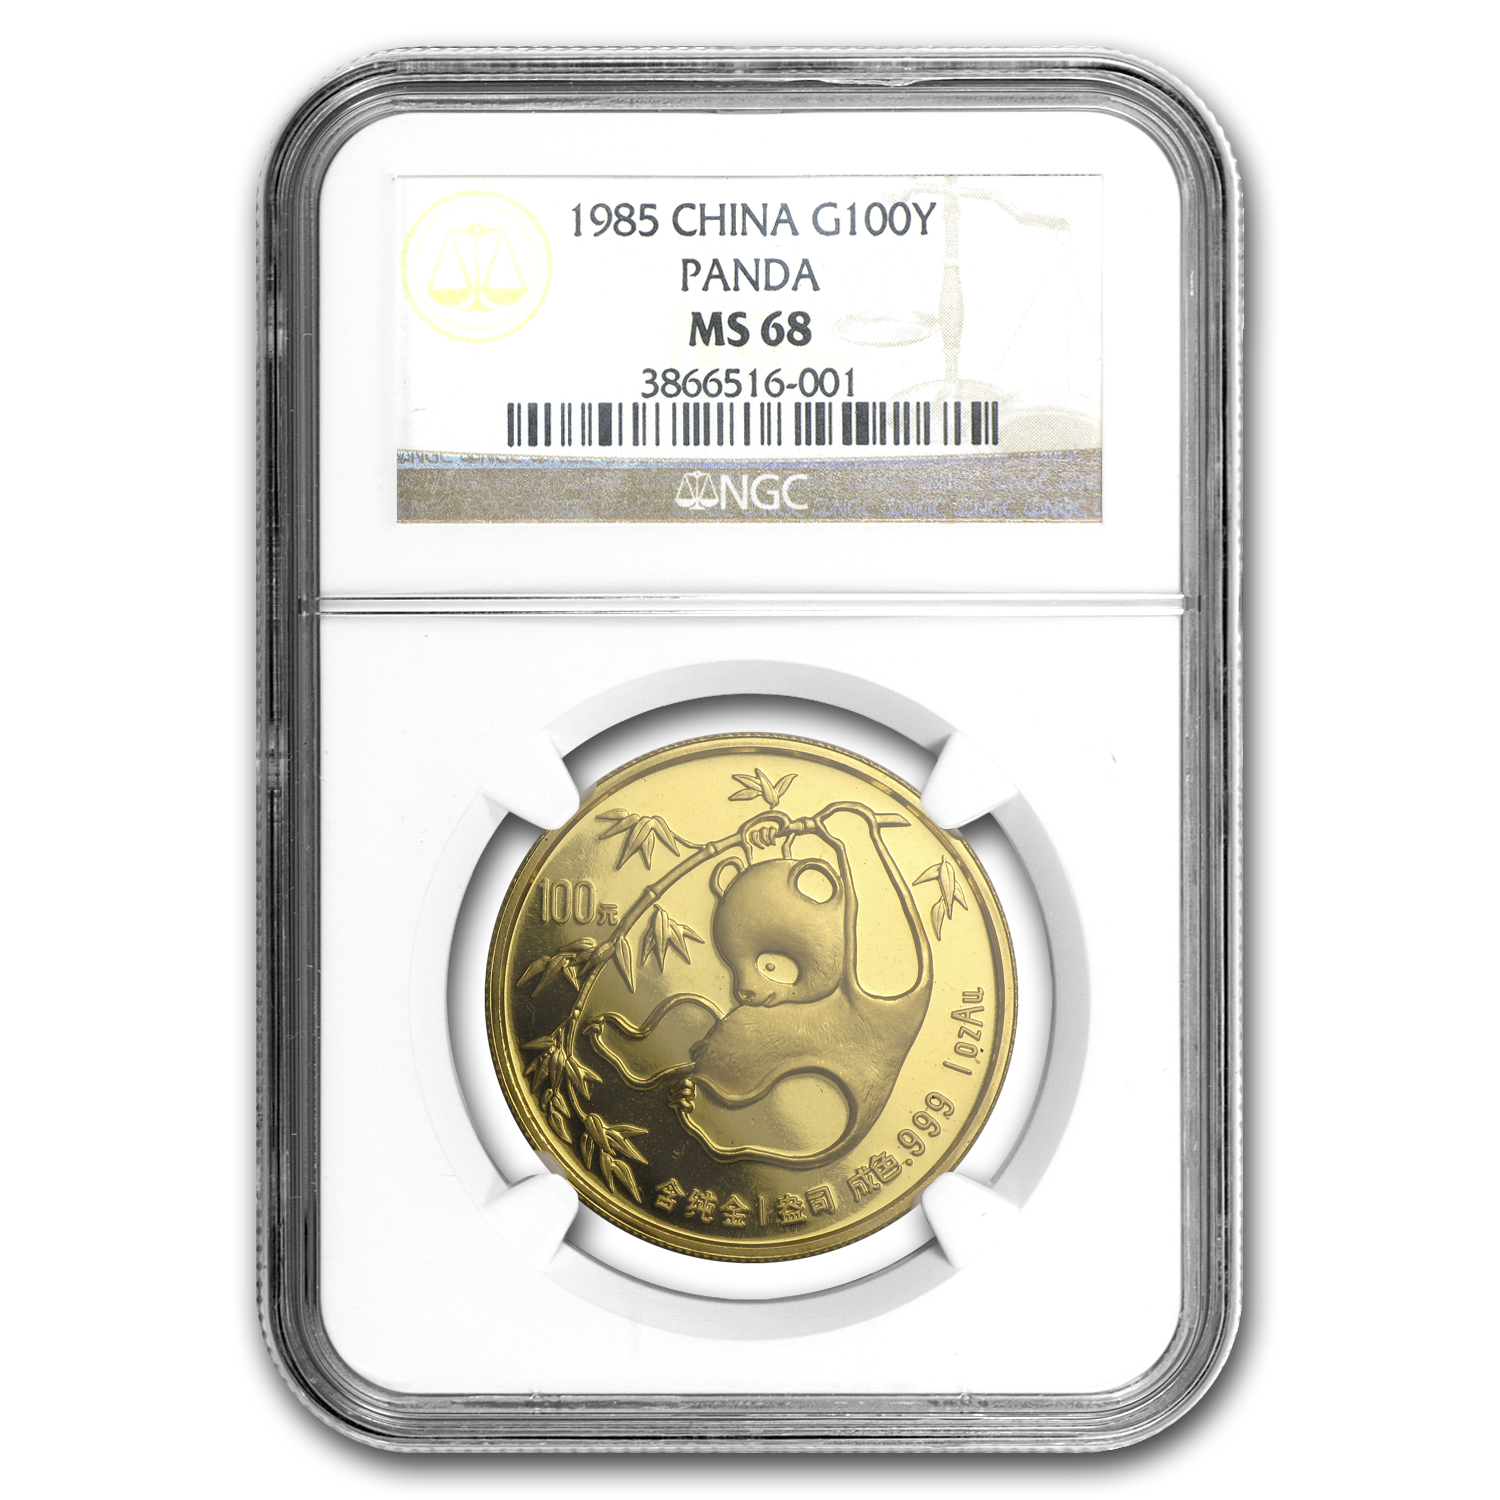 1985 China 1 oz Gold Panda MS-68 NGC